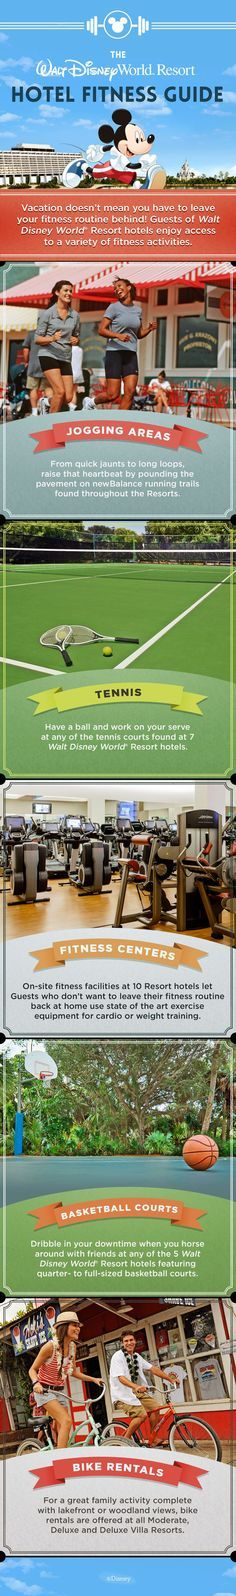 A Walt Disney World vacation doesn't mean you have to leave your fitness routine behind! Enjoy a variety of activities including running, tennis, biking, and basketball when you stay at a Walt Disney World Resort hotel!